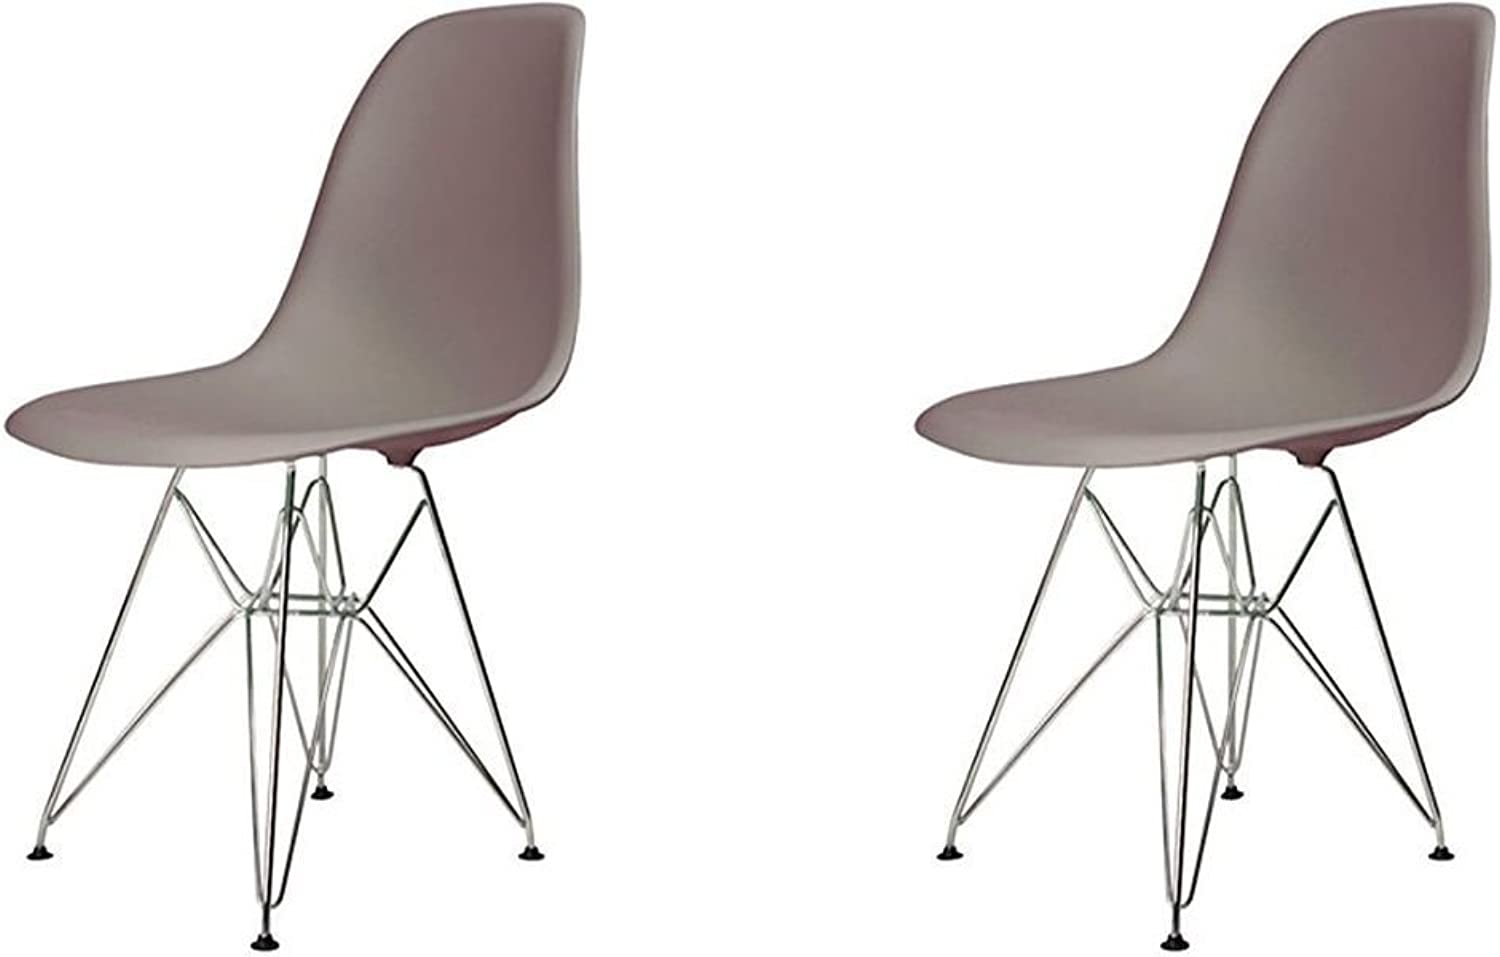 Meubles House S2-PC-0116-T Eames Style Side Chair-Modern Eiffel Style Adult Dining Chrome Metal Base-Taupe (Set of Two)